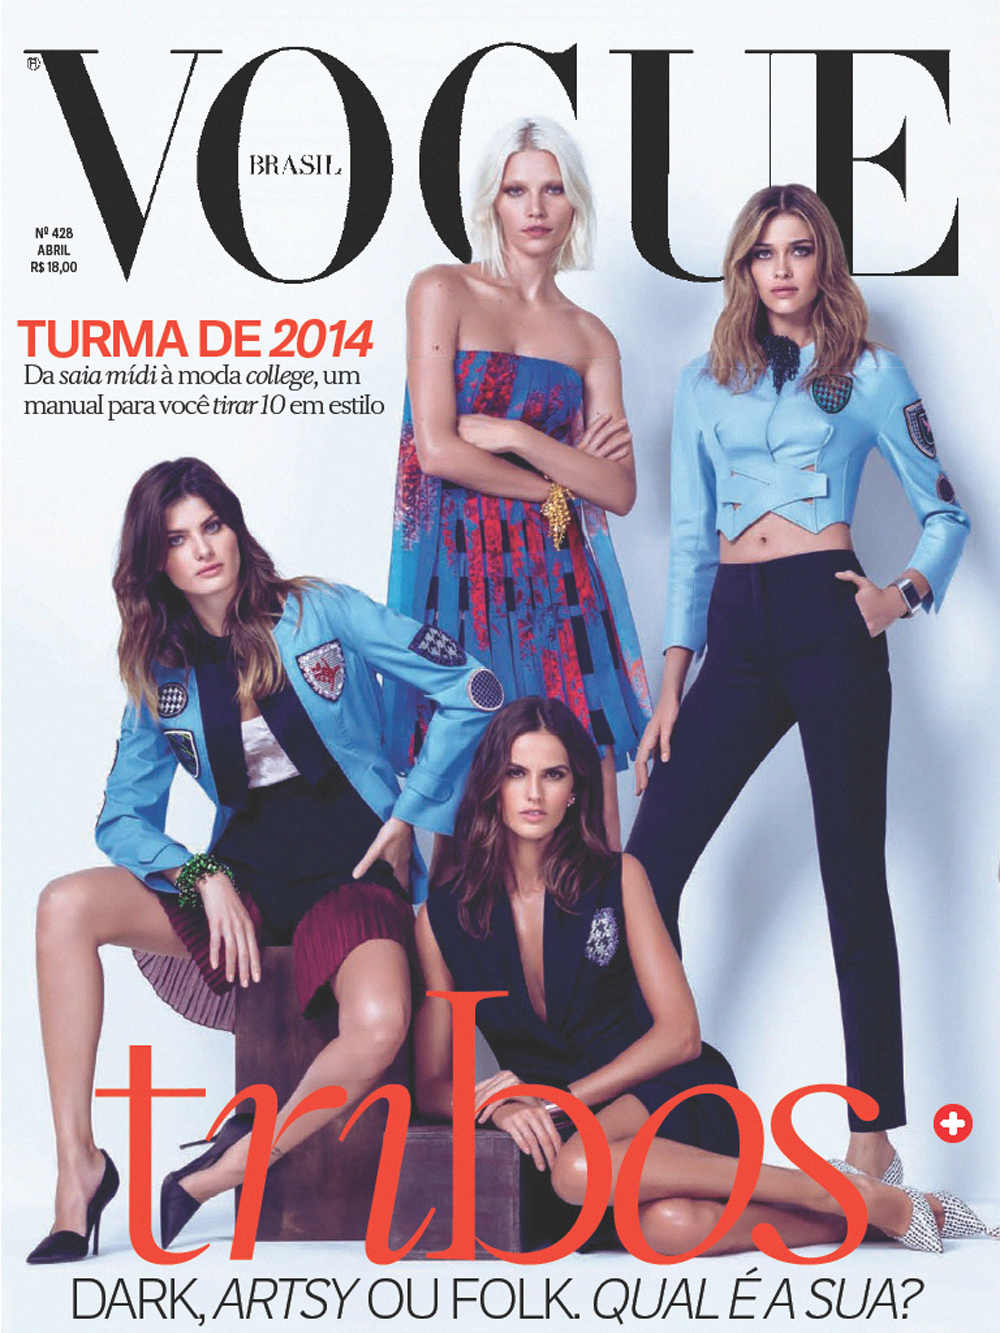 Brazilian Fashion Models Aline Weber, Ana Beatriz Barros, Isabeli Fontana, And Izabel Goulart Modeling For The Cover Of Vogue Brazil (Vogue Brasil) Magazine Modeling As The Highest Paid Brazilian Models In The World.